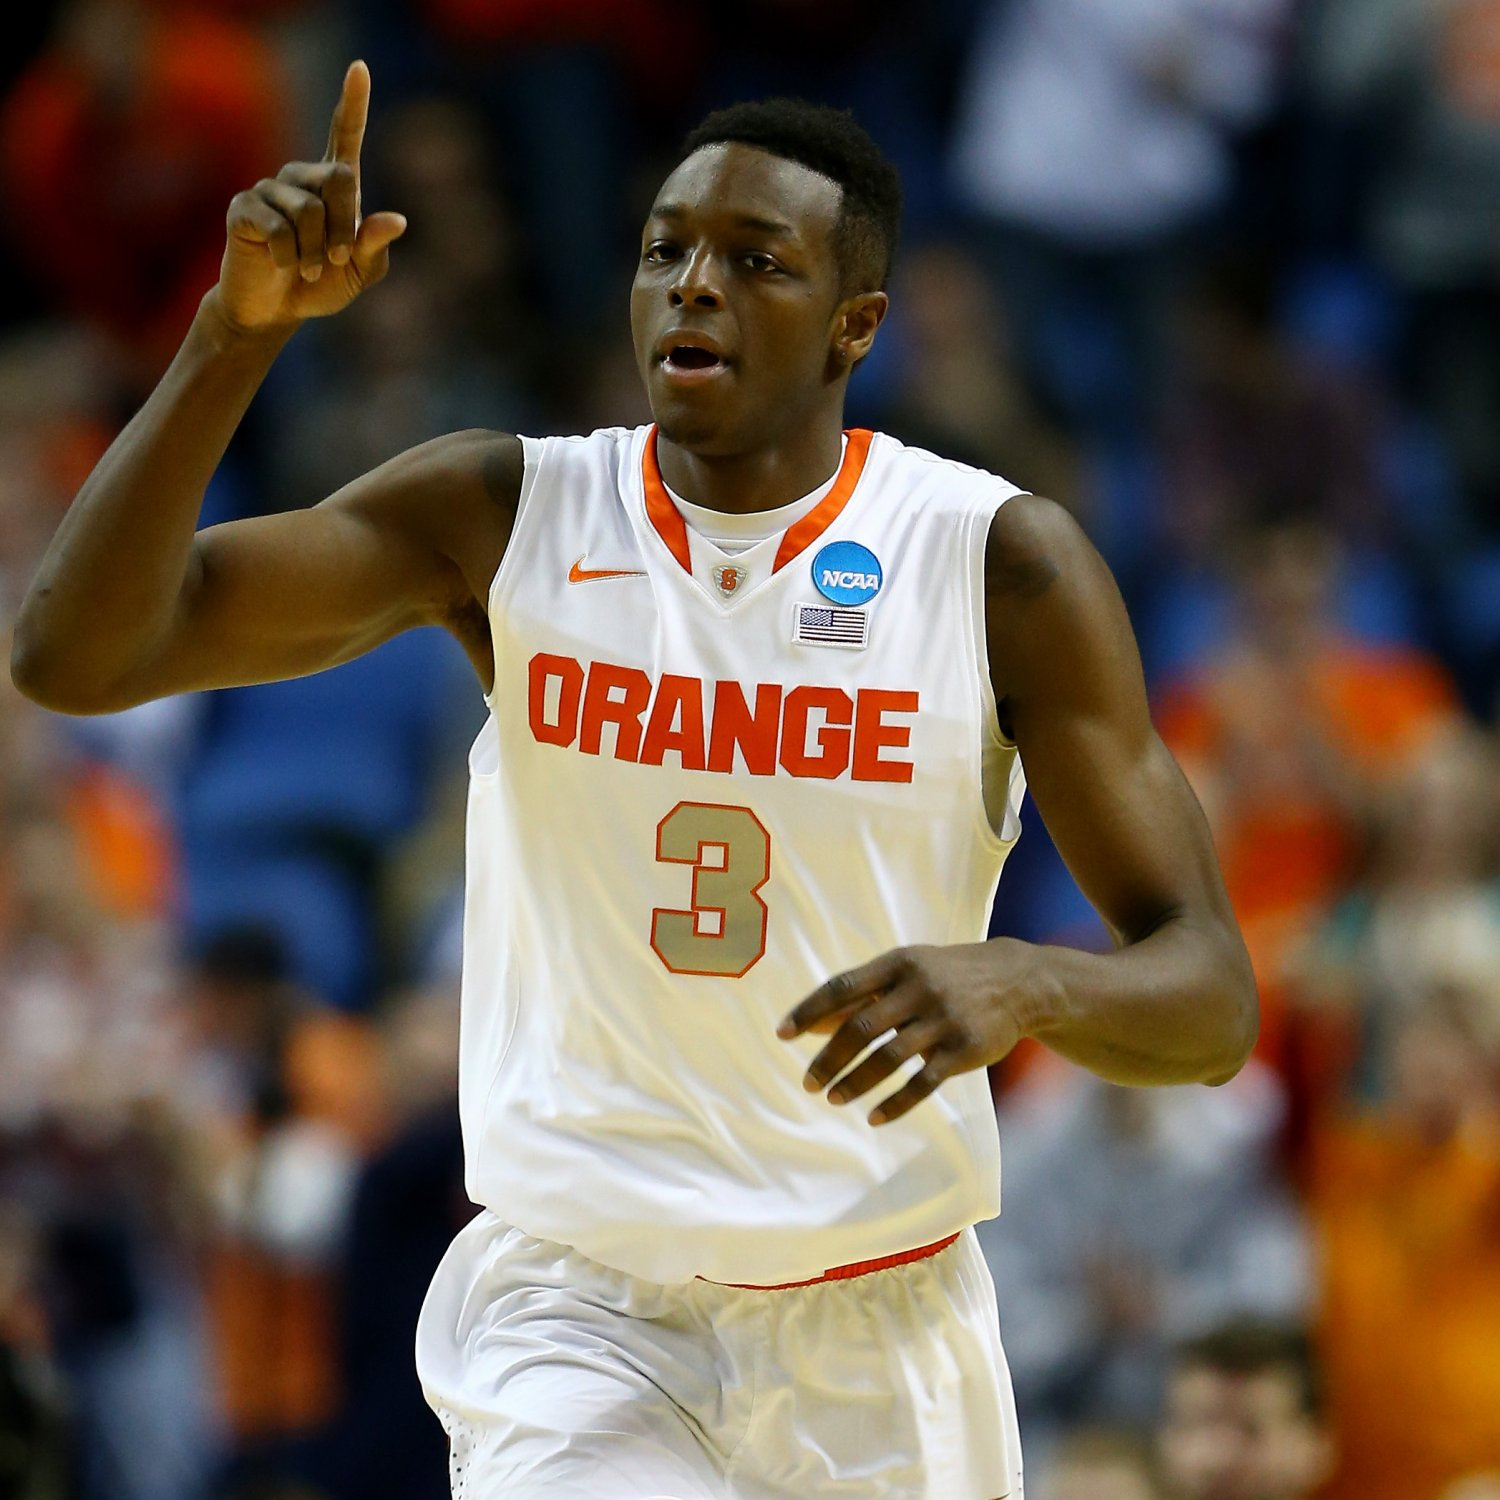 Jerami Grant NBA Draft 2014: Highlights, Scouting Report